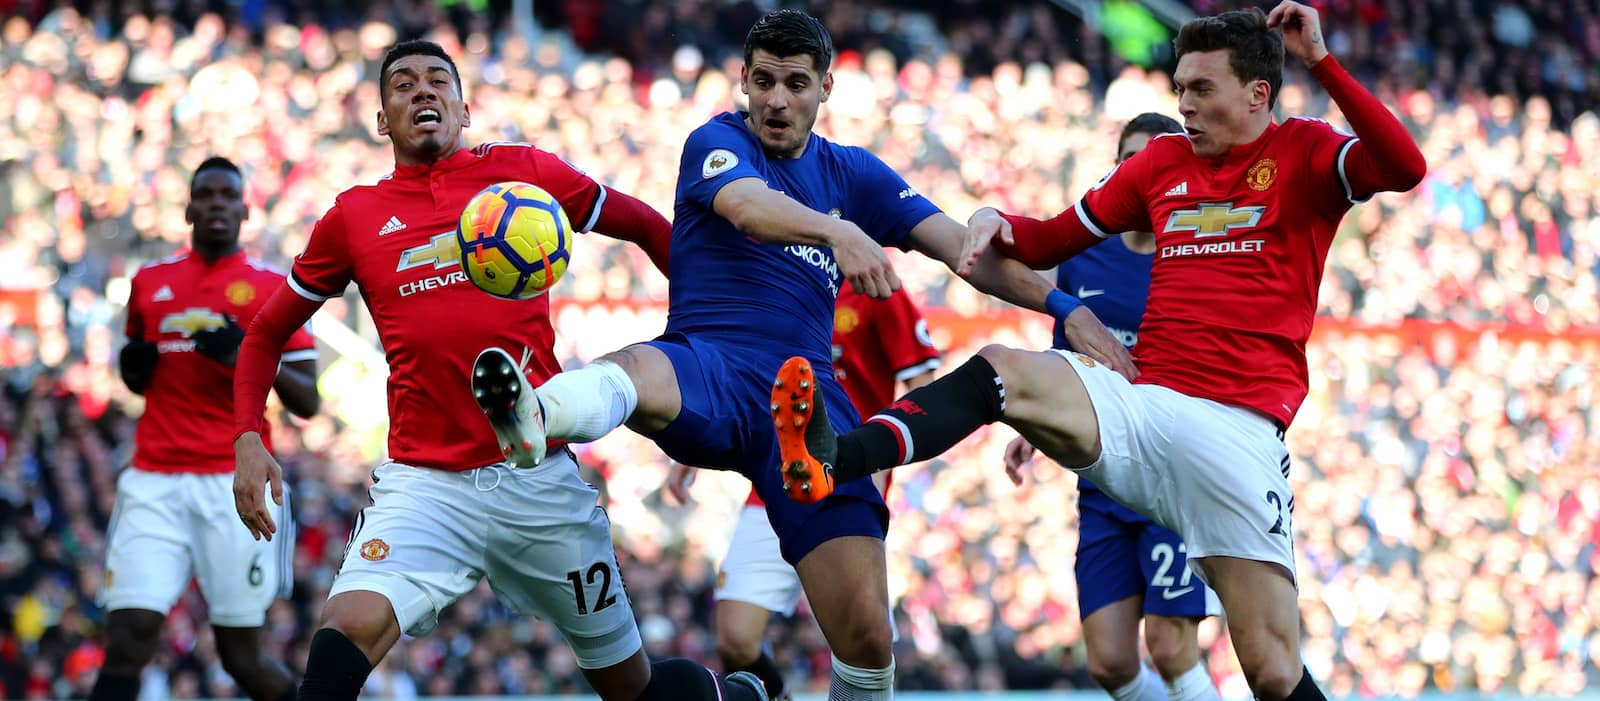 Manchester United fans uncertain after Chris Smalling's performance vs Crystal Palace